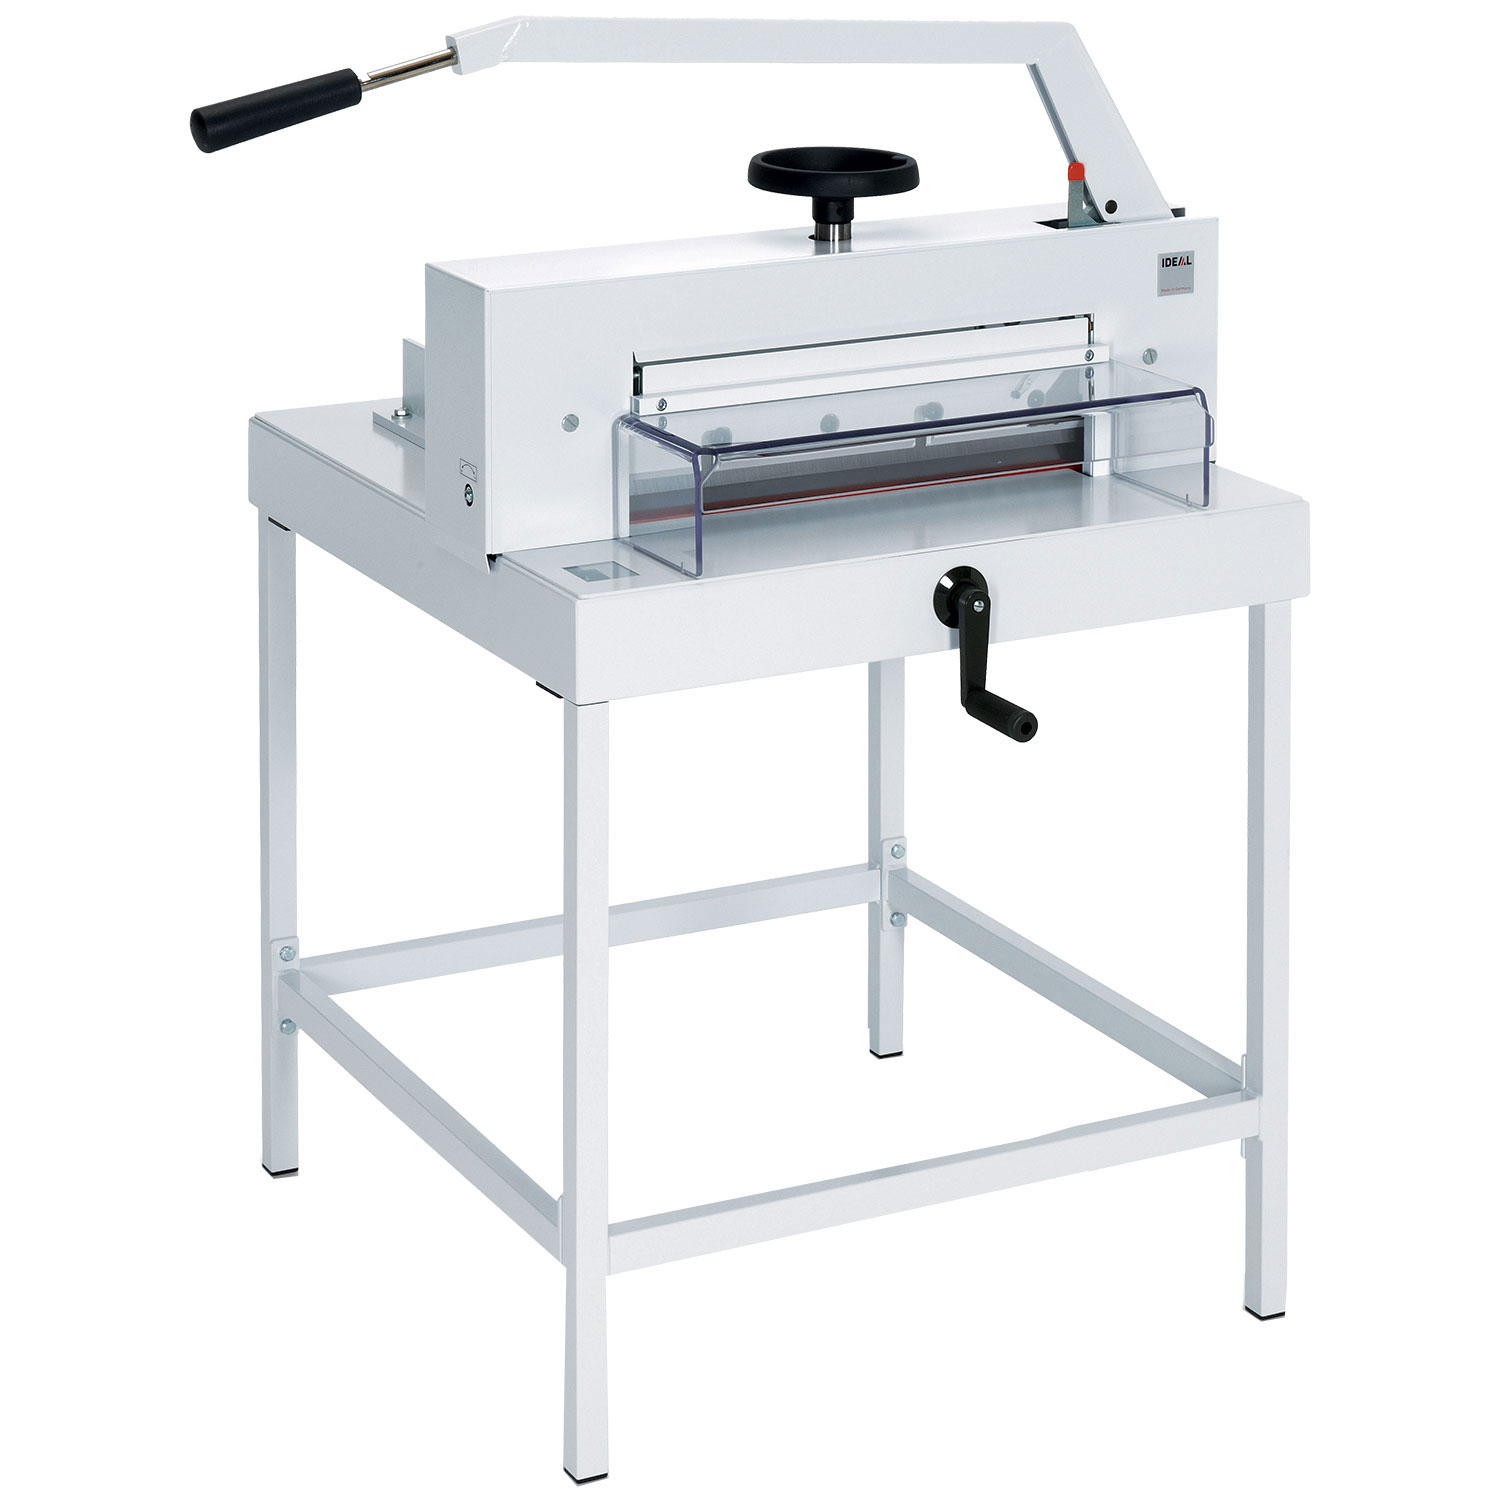 IDEAL 4705 Heavy-Duty Manual Desktop Paper Guillotine